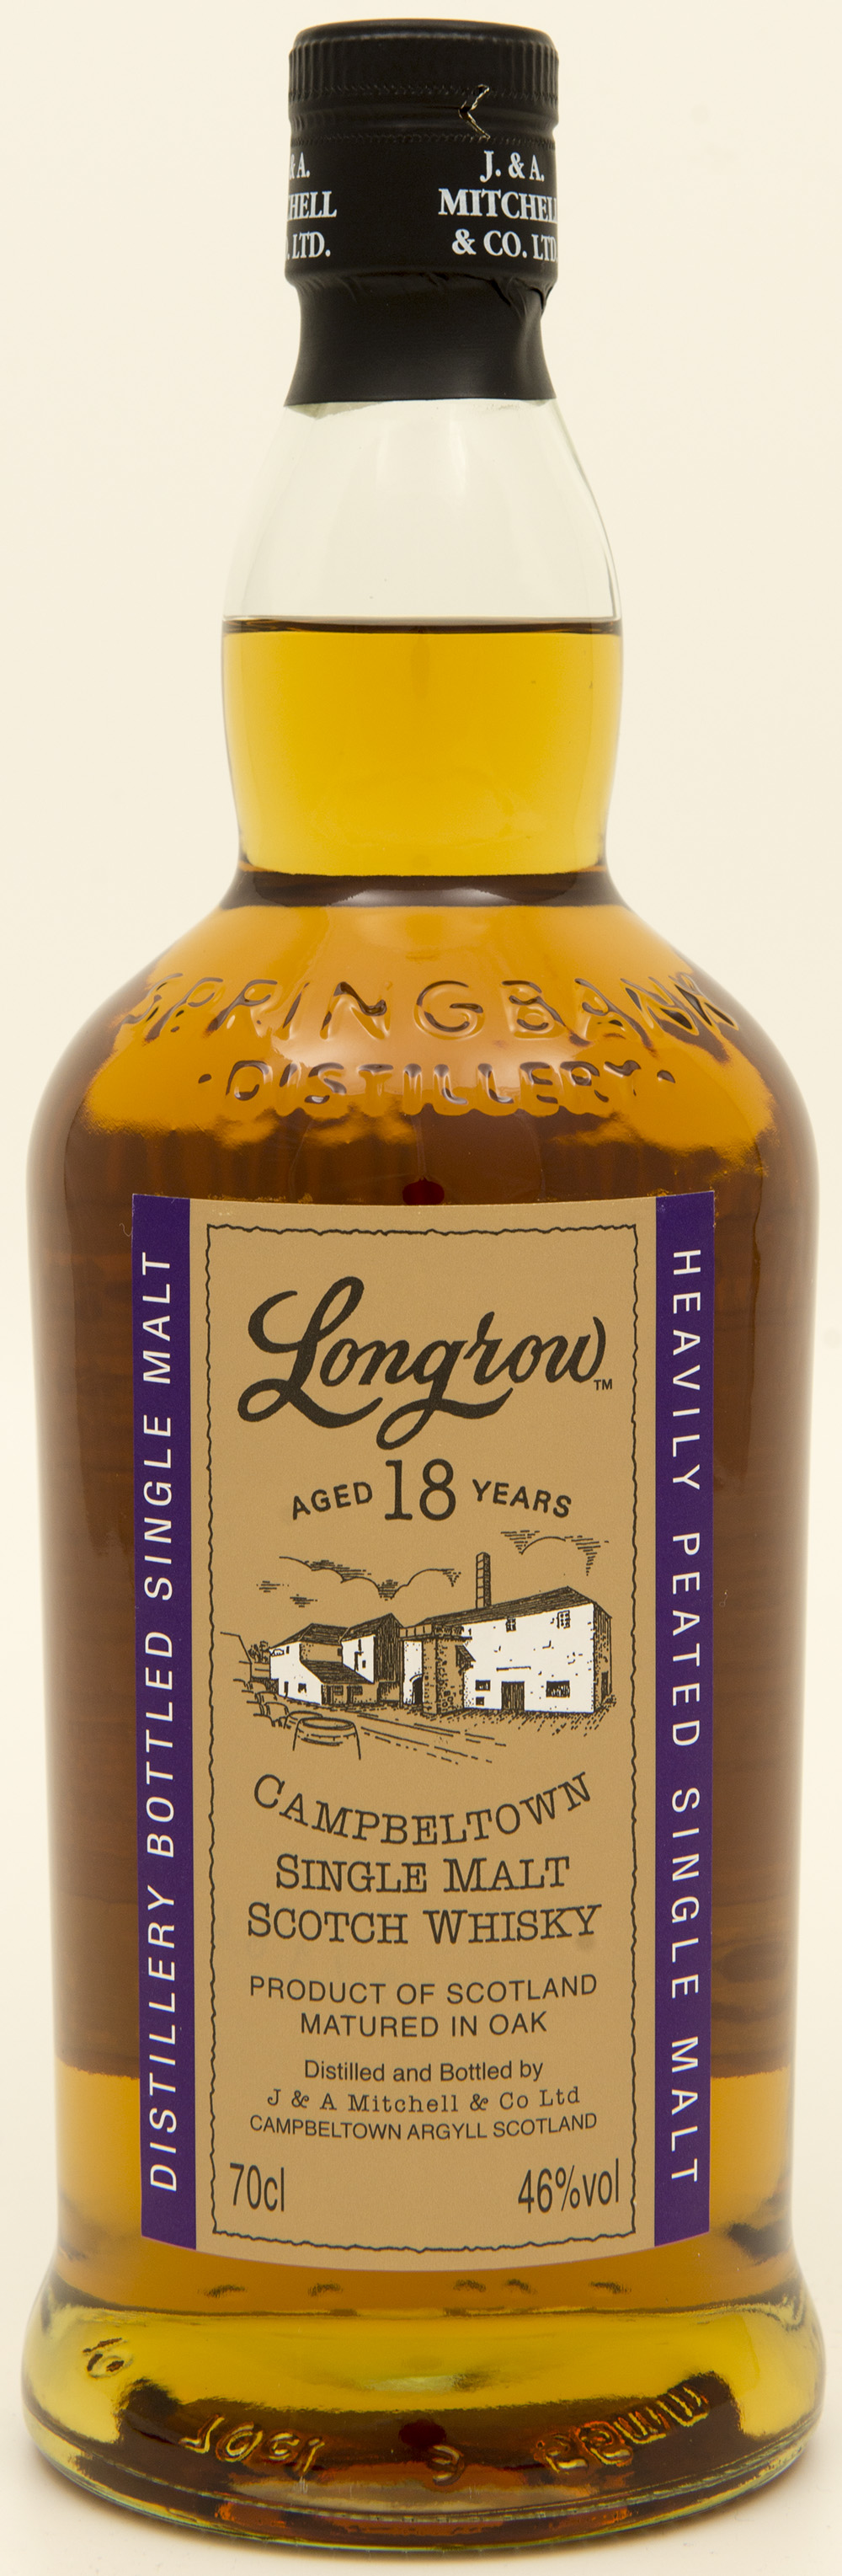 Billede: DSC_1312 - Longrow 18 - bottle front.jpg